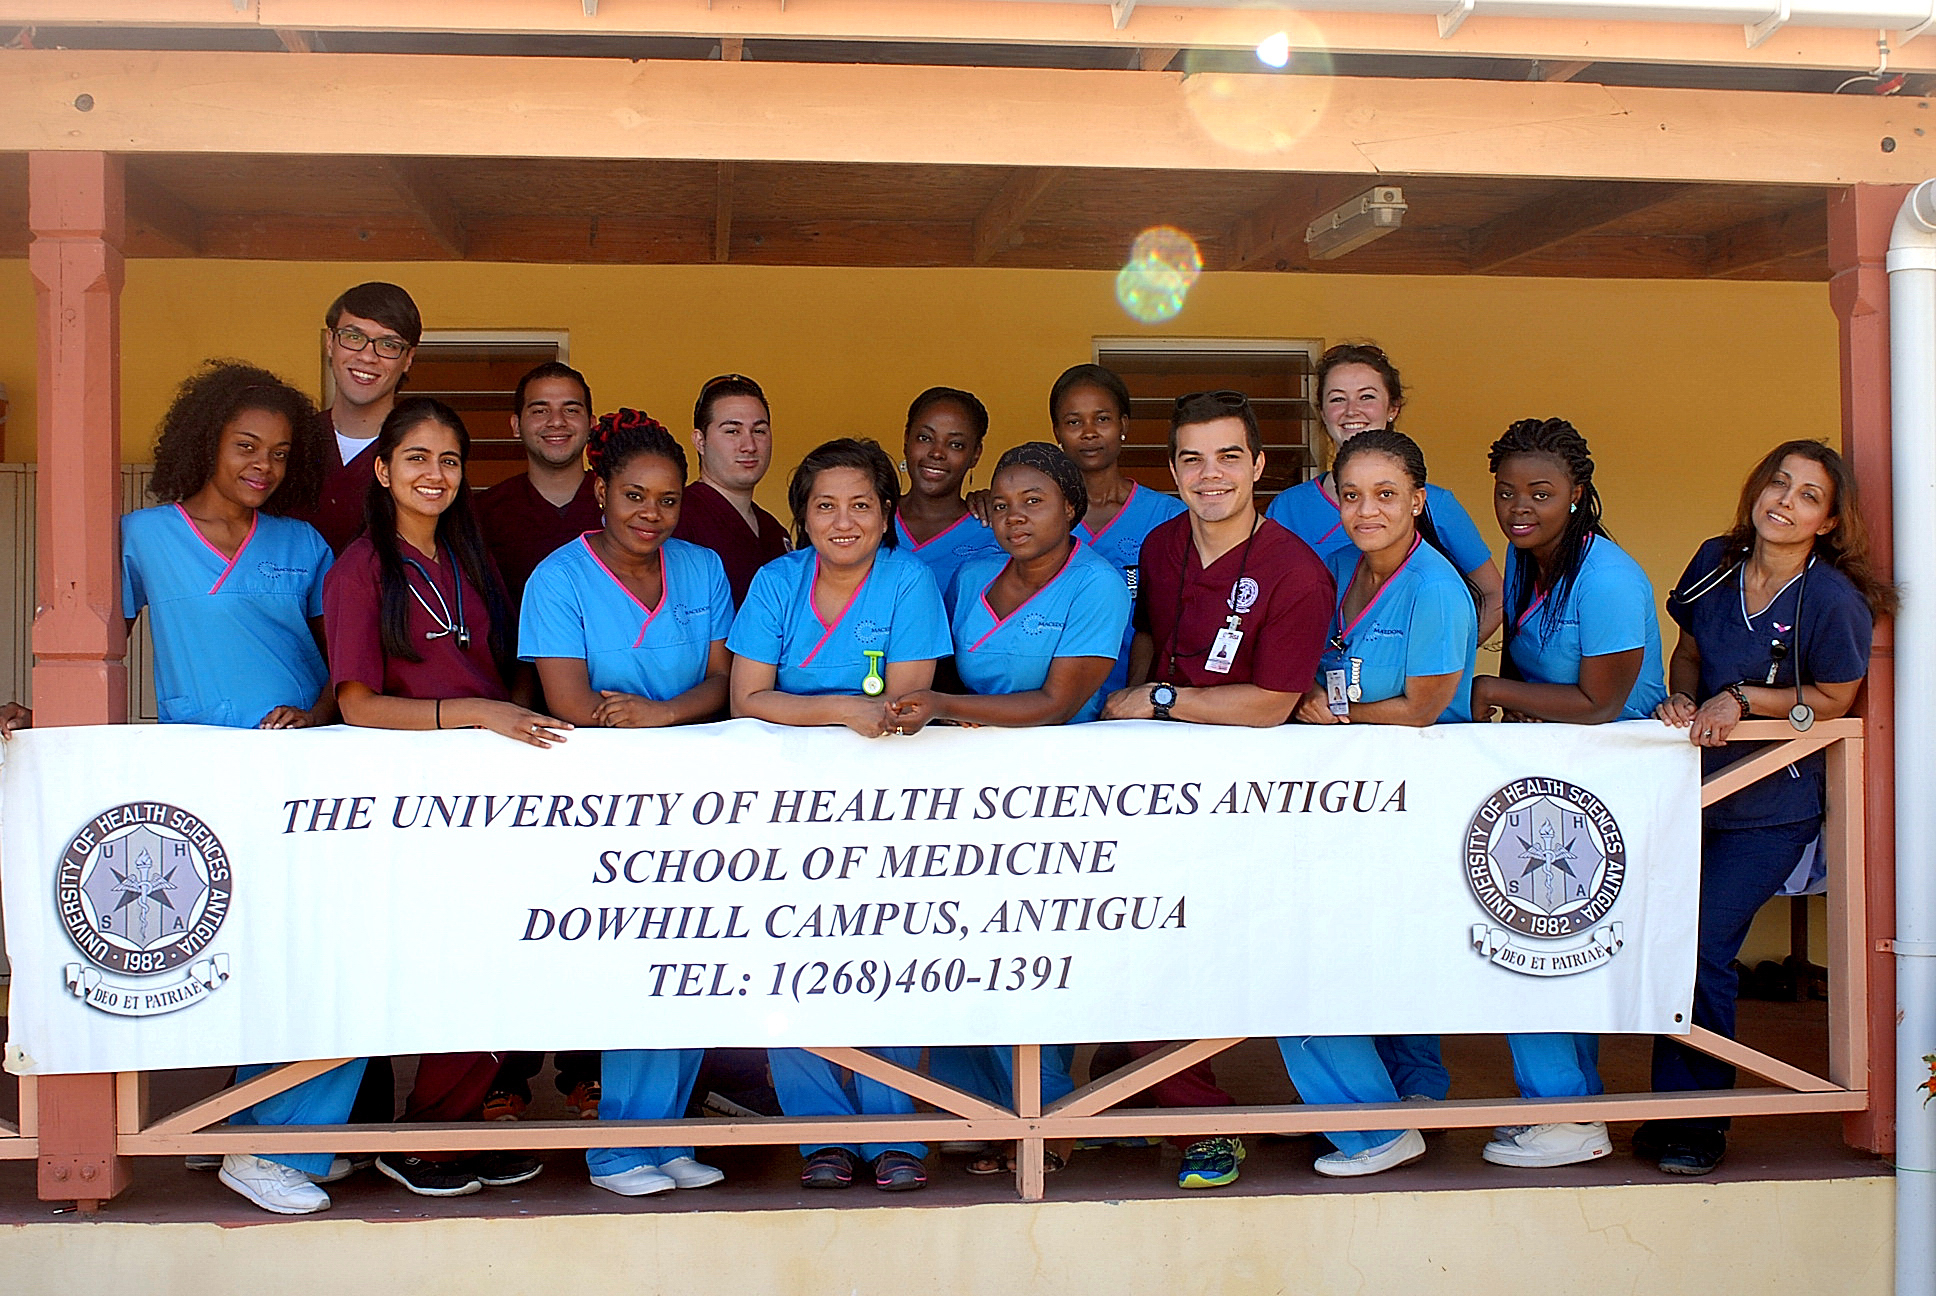 nurse-and-med-students-uhsa-010